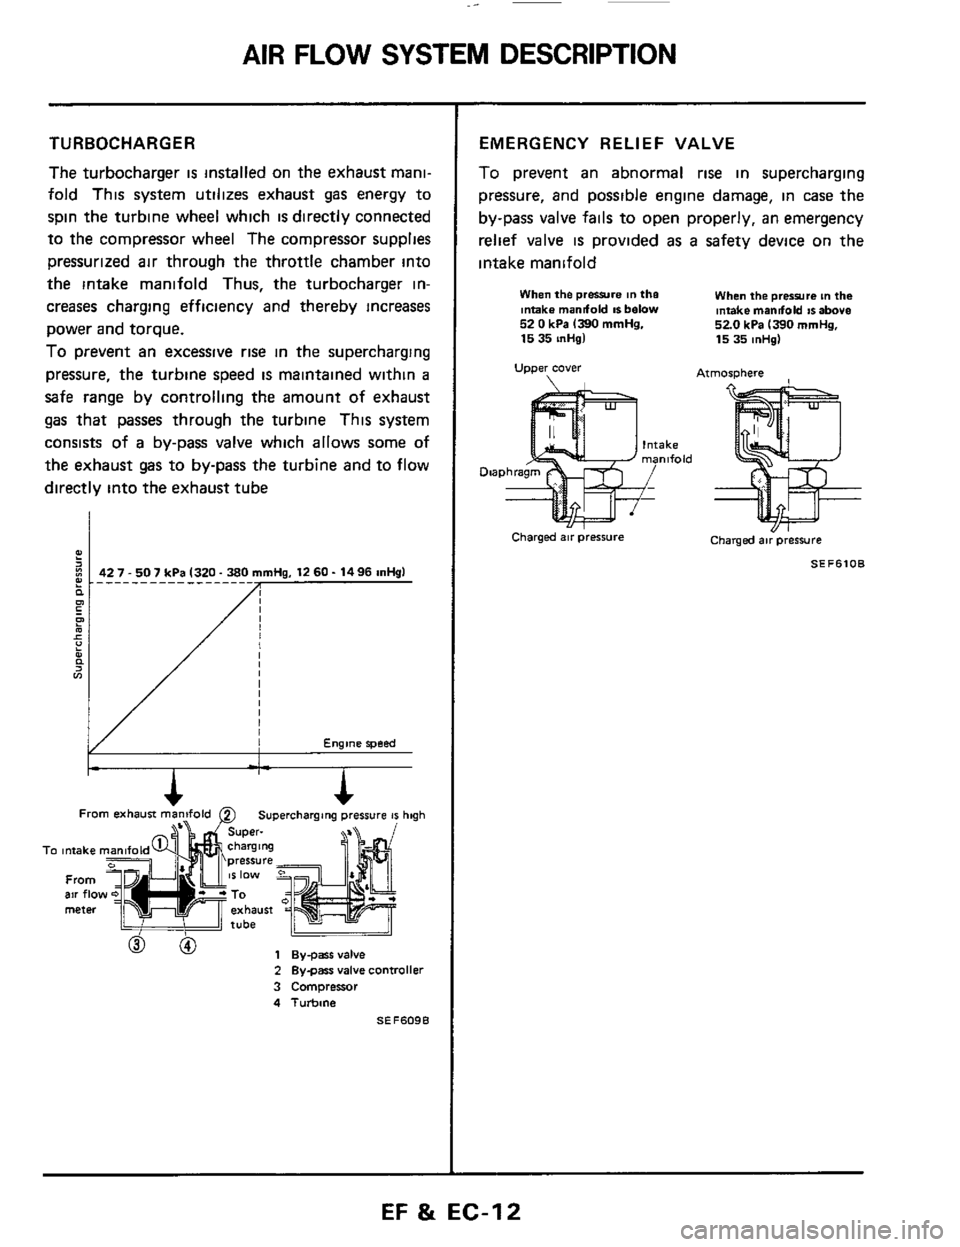 Nissan 300zx 1984 Z31 Engine Fuel And Emission Control System Air Flow Valve Schematic Workshop Manual